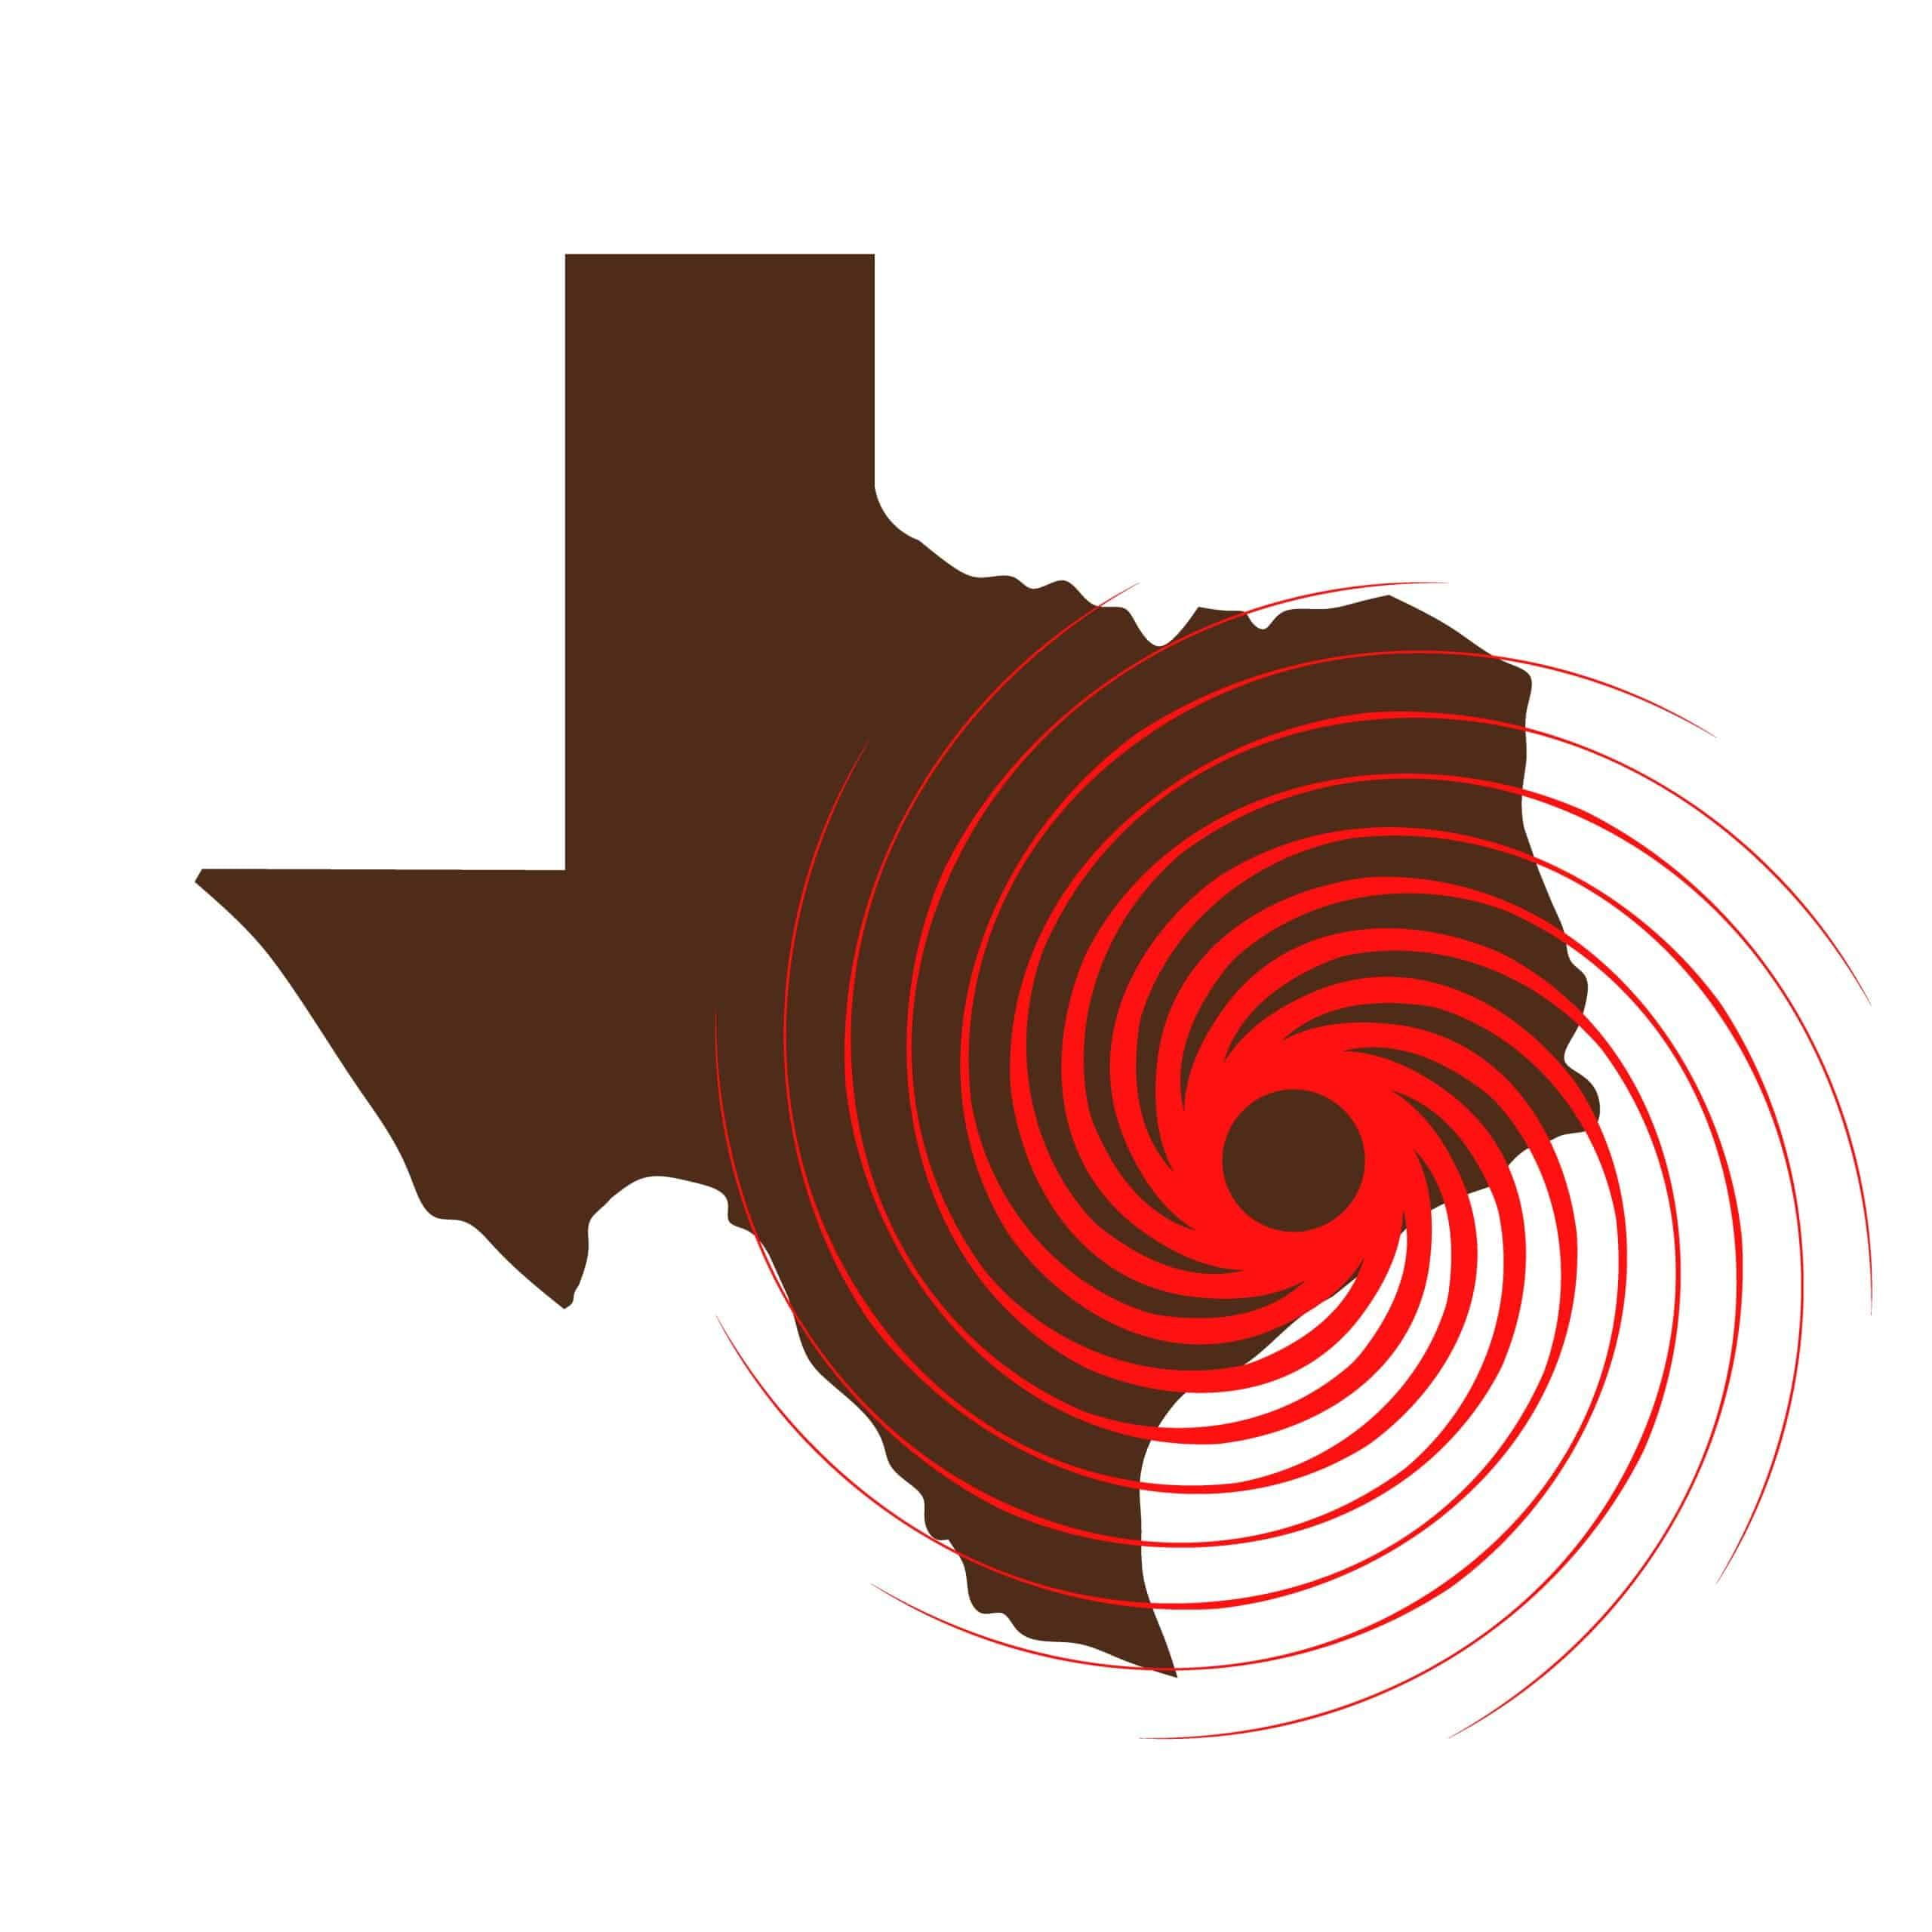 hurricane laura and security solutions - texas state outline with red hurricane shape on gulf coast